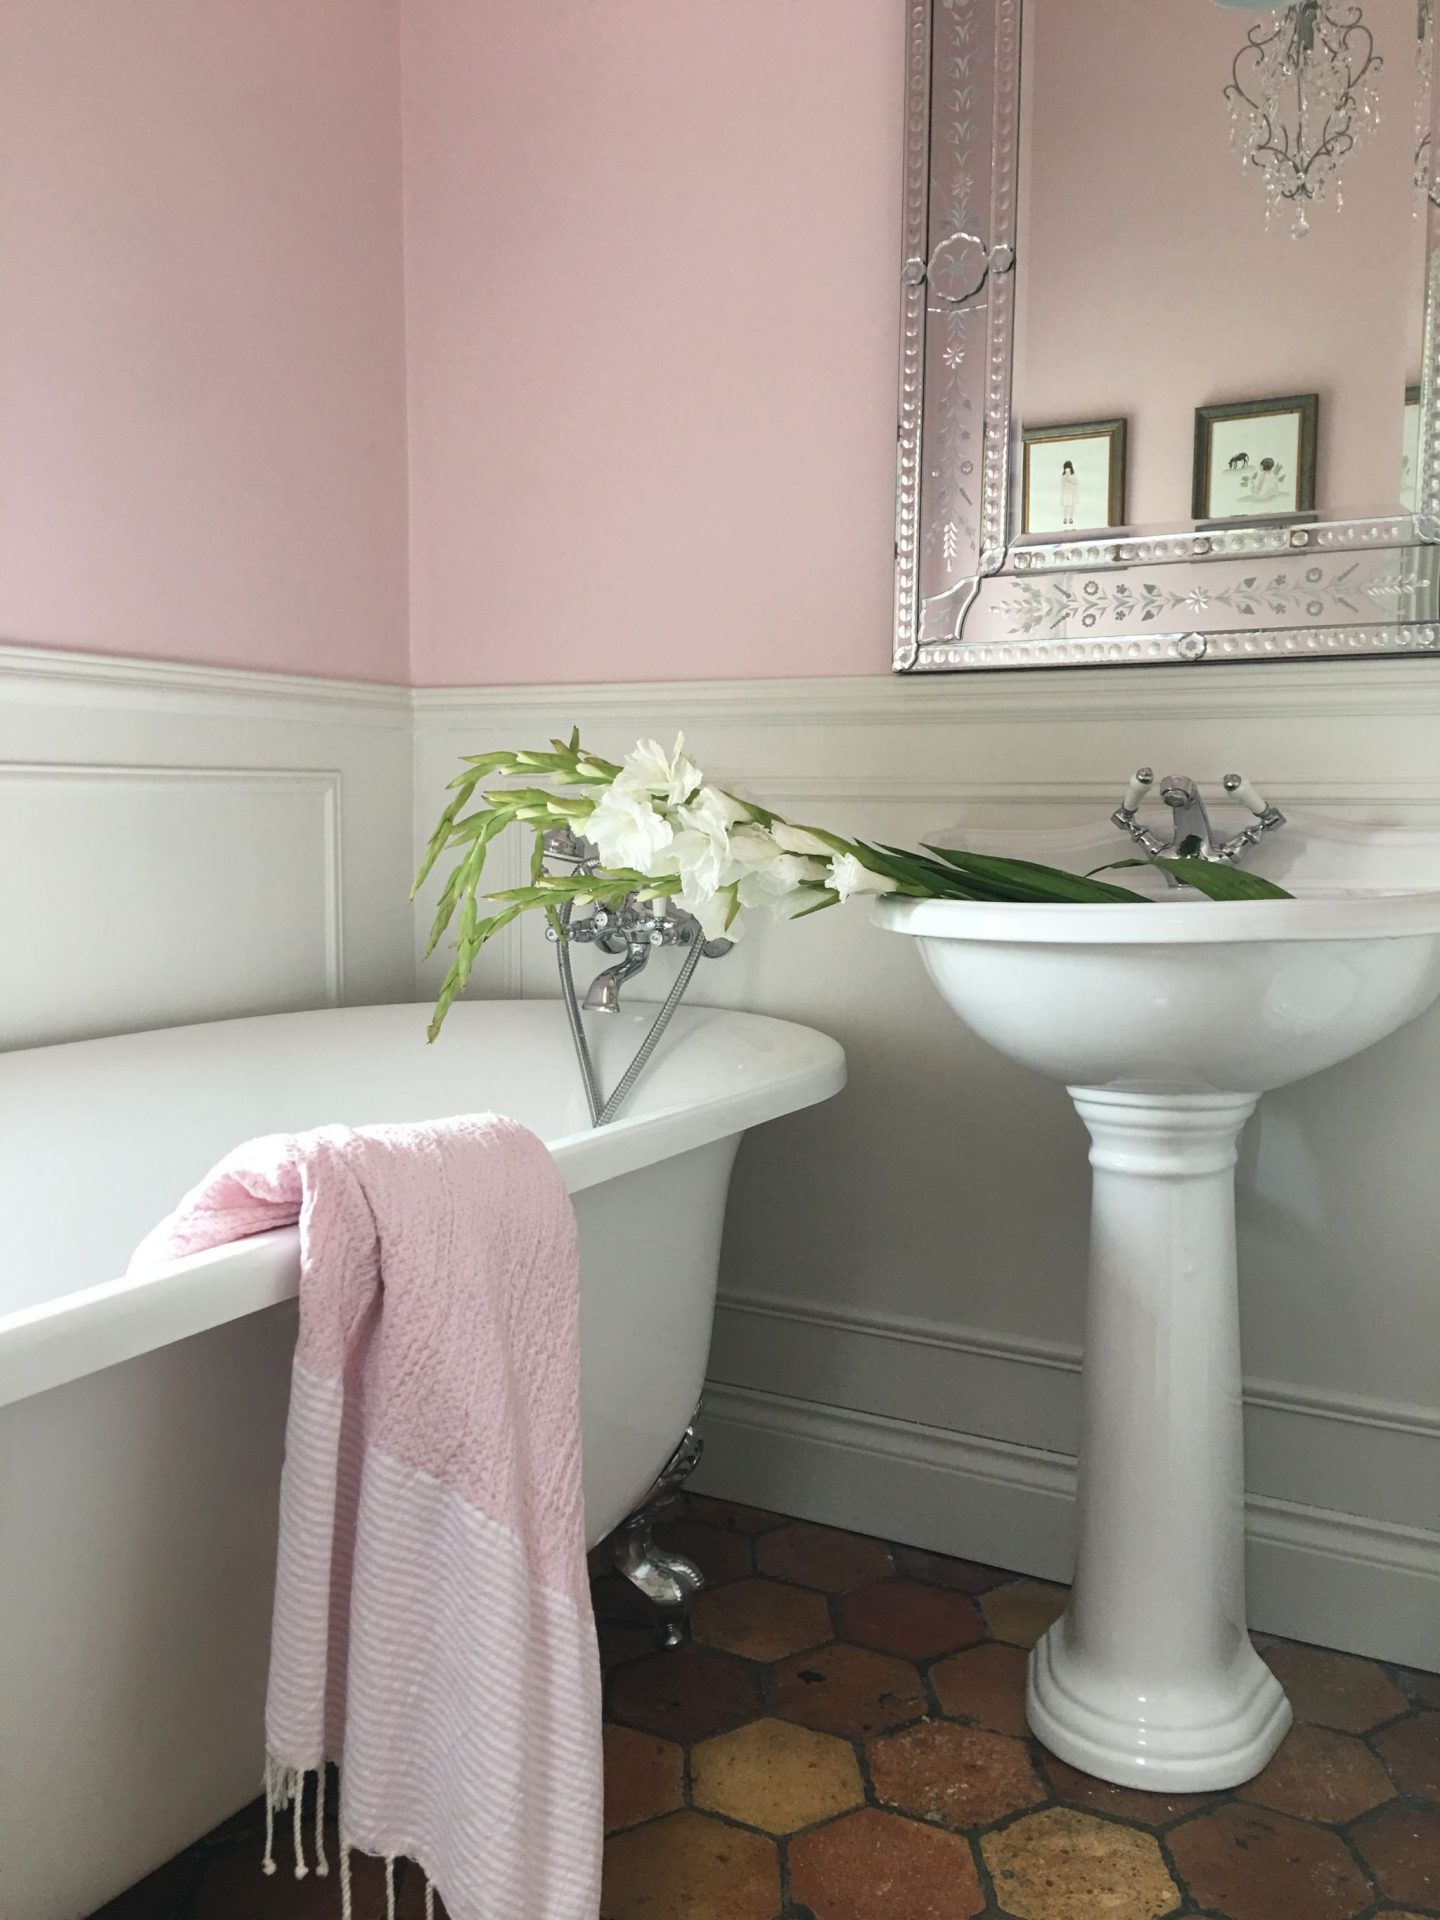 Farrow and Ball Middleton Pink paint color on the walls, a clawfoot tub, and a pedestal sink grace this French farmhouse bathroom with reclaimed terracotta hex tiles - Vivi et Margot.